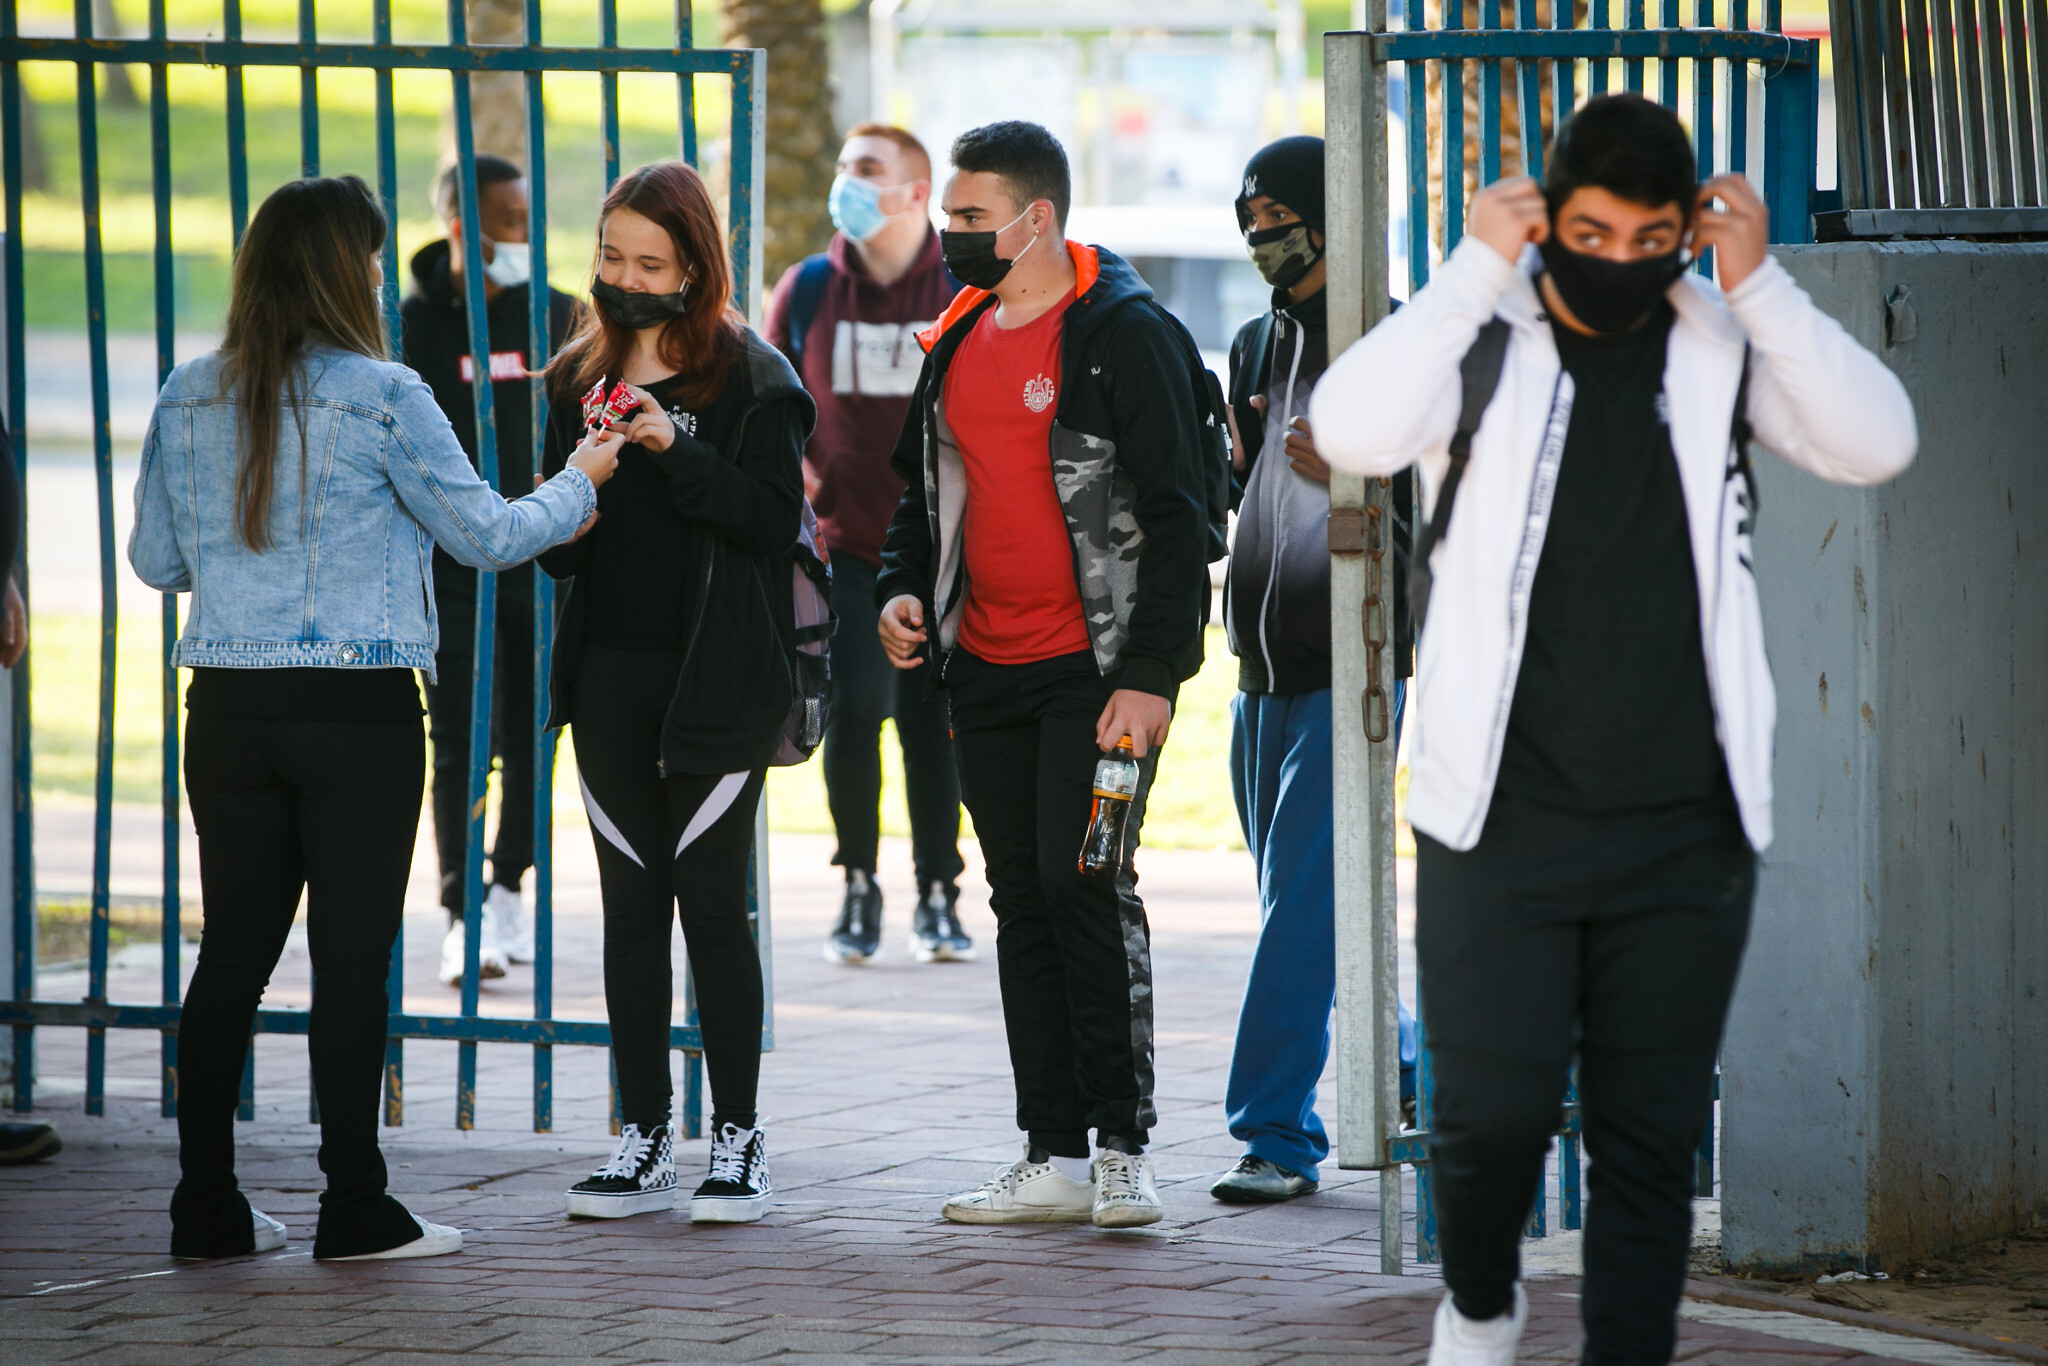 Israeli students arrive at a high school in the southern city of Ashdod, November 29, 2020. (Flash90)